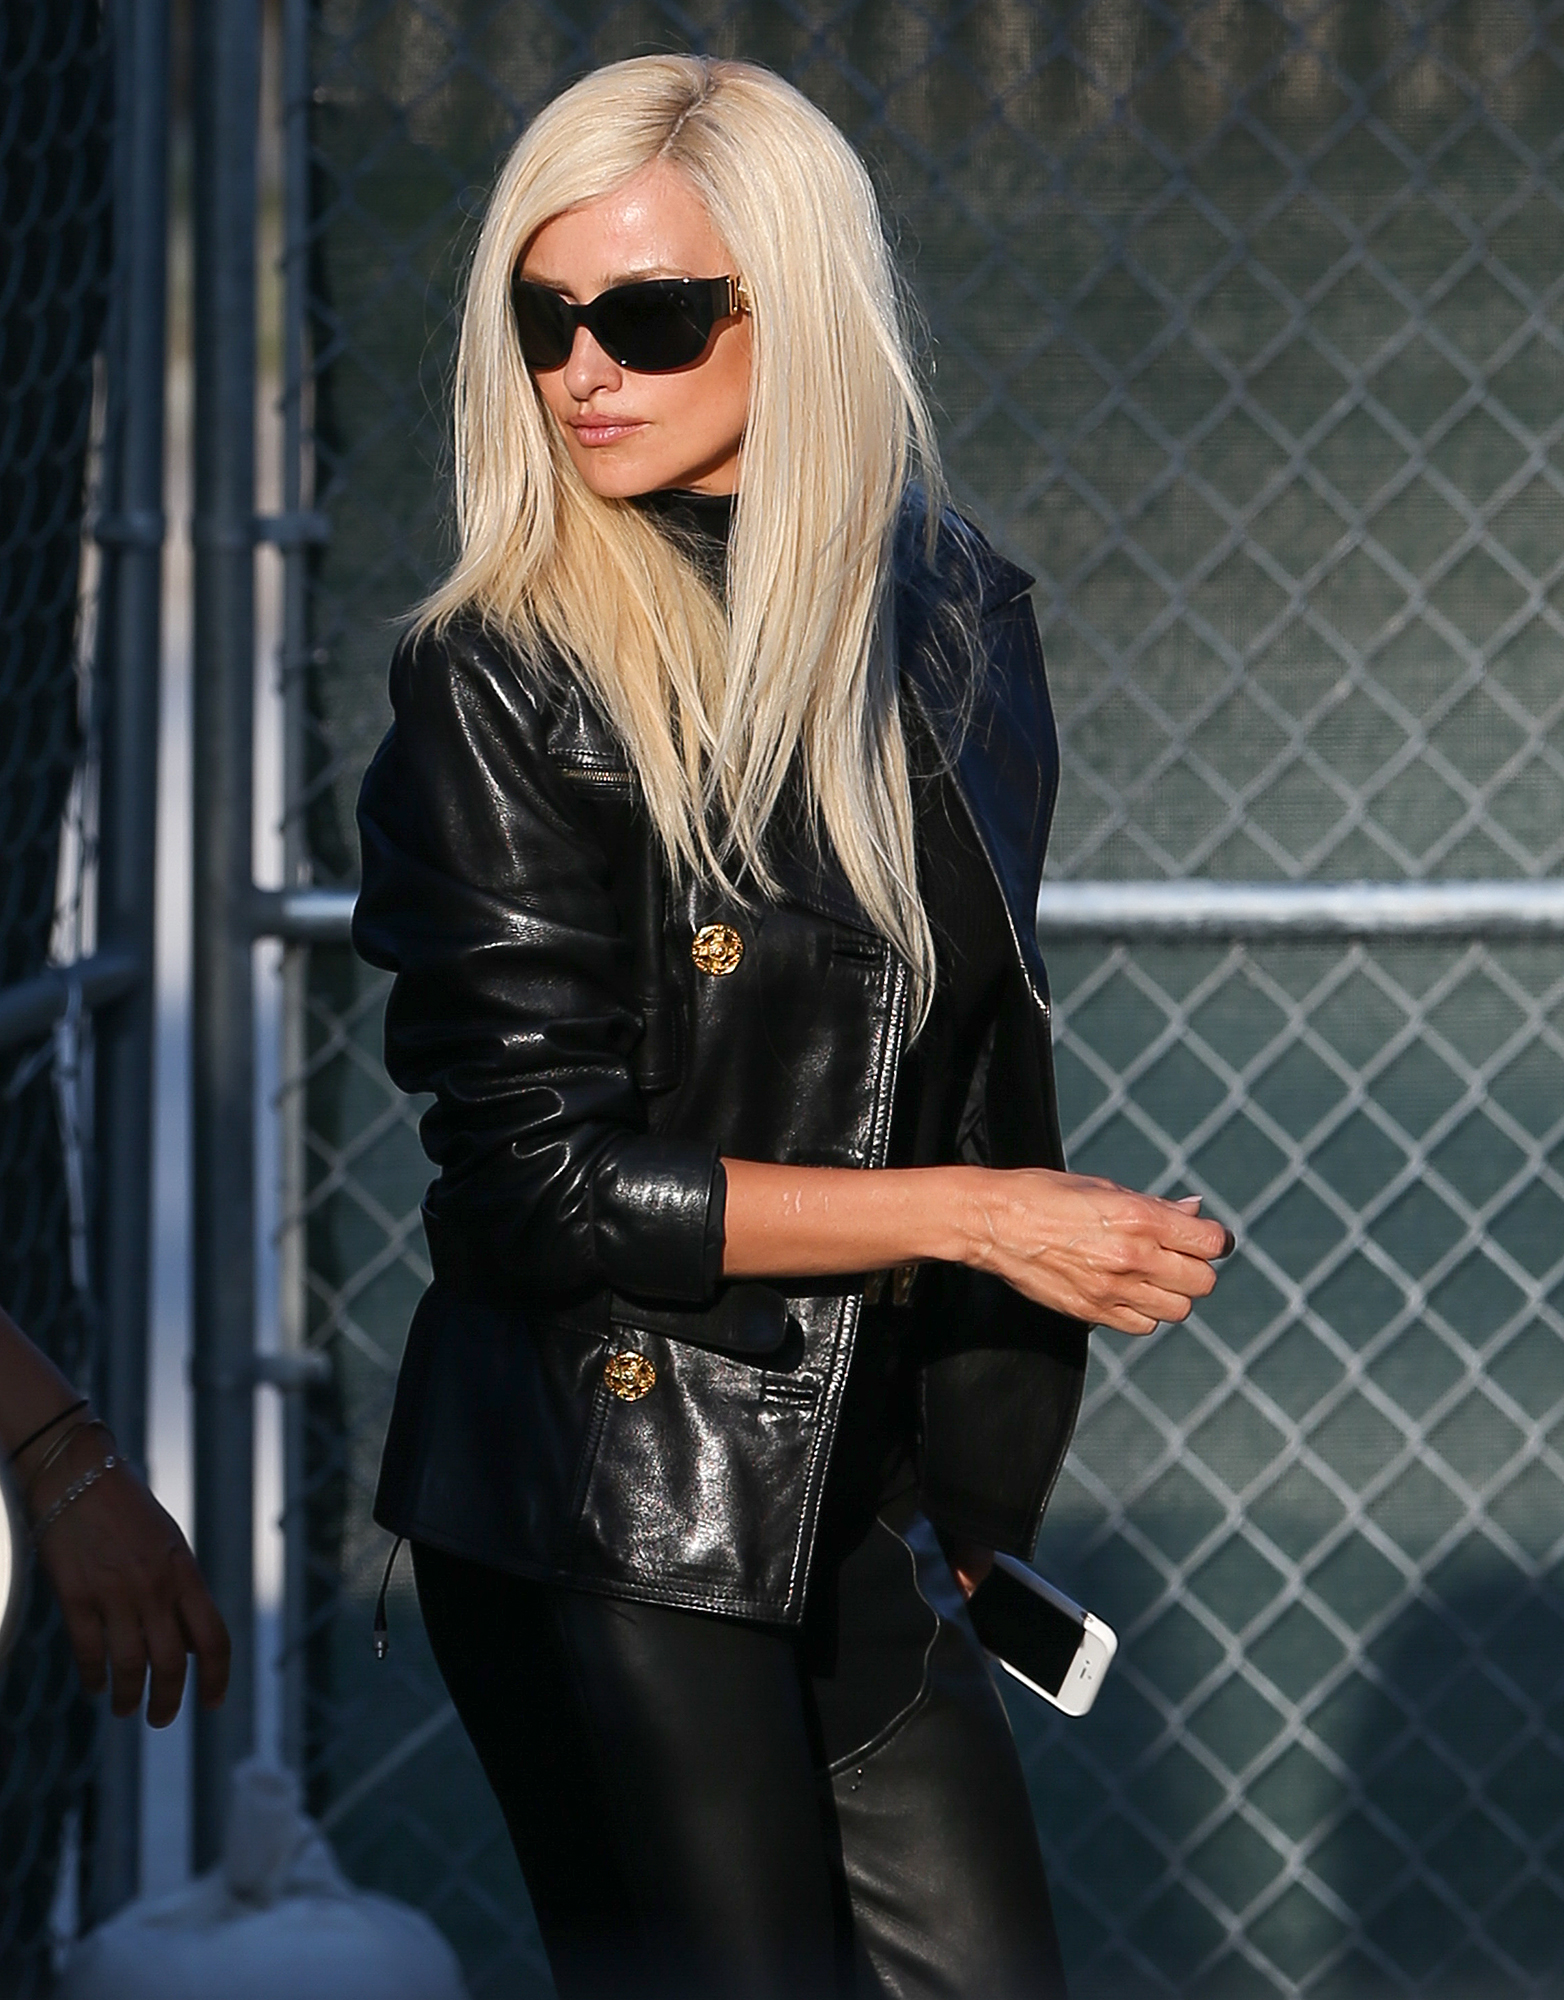 Penelope Cruz sports a blonde wig as she plays Donatella Versace on the set of 'Versace: American Crime Story' in Miami